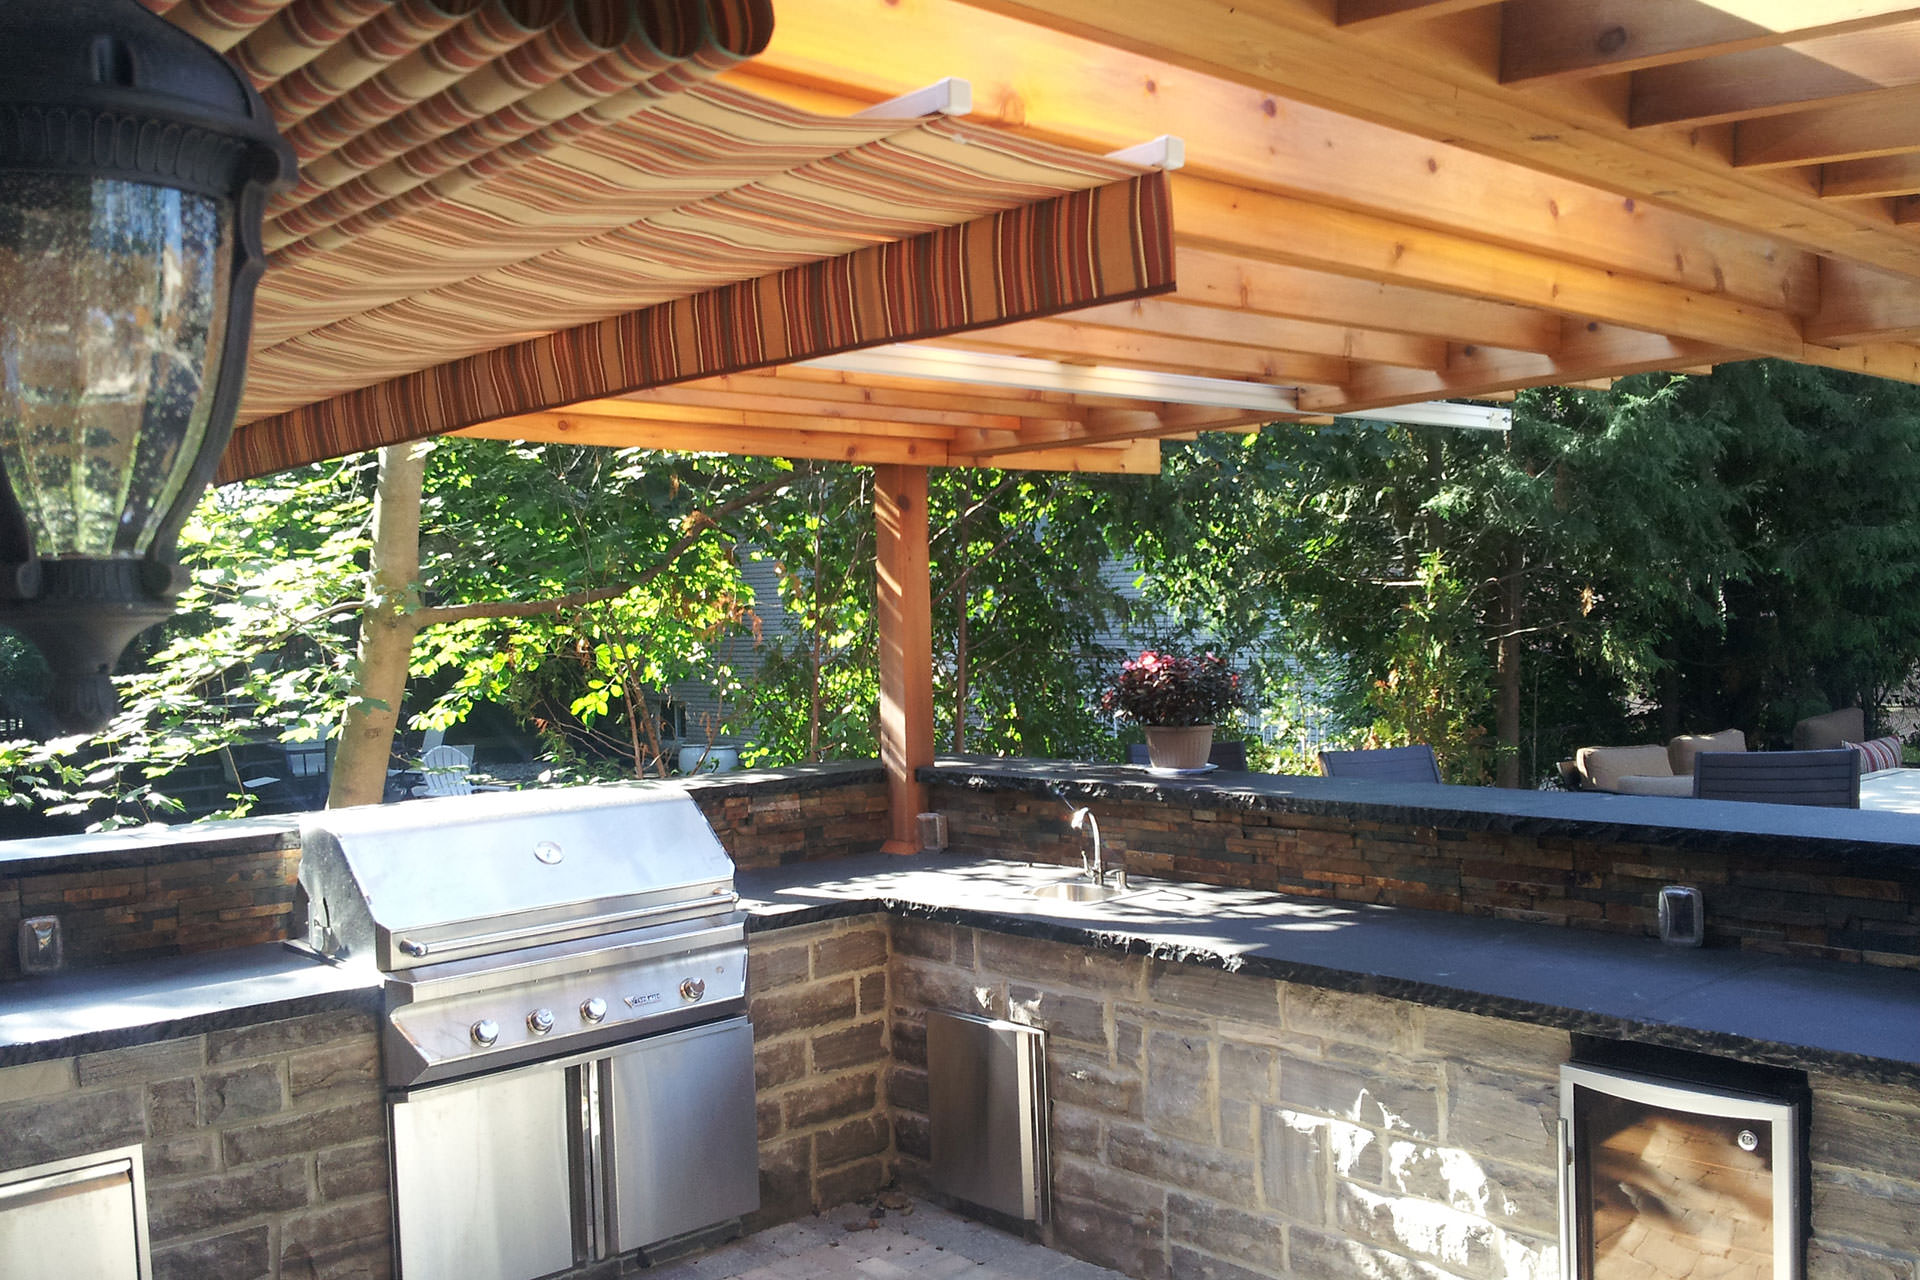 Cover More Space with Cantilevered Canopies